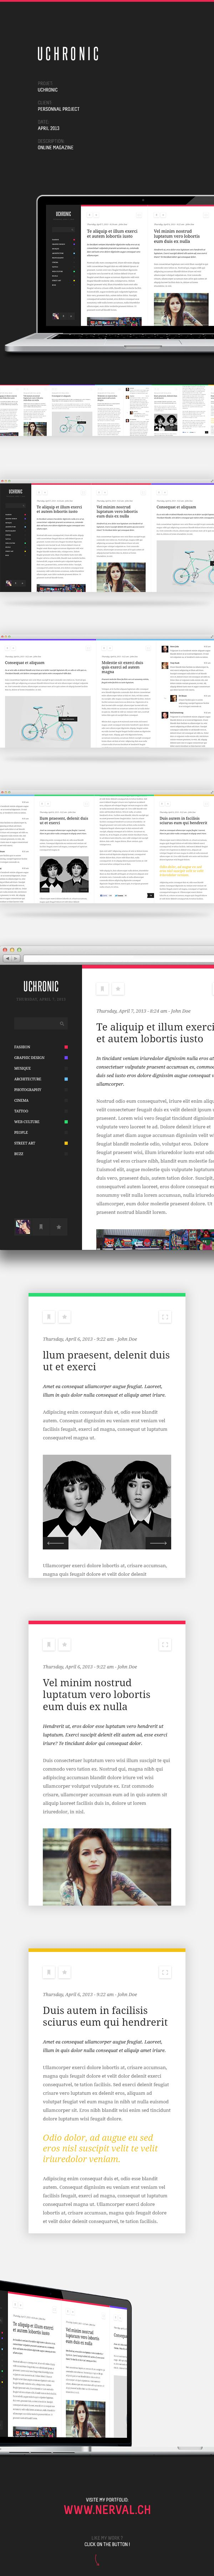 Uchronic by Pierre Georges, via Behance